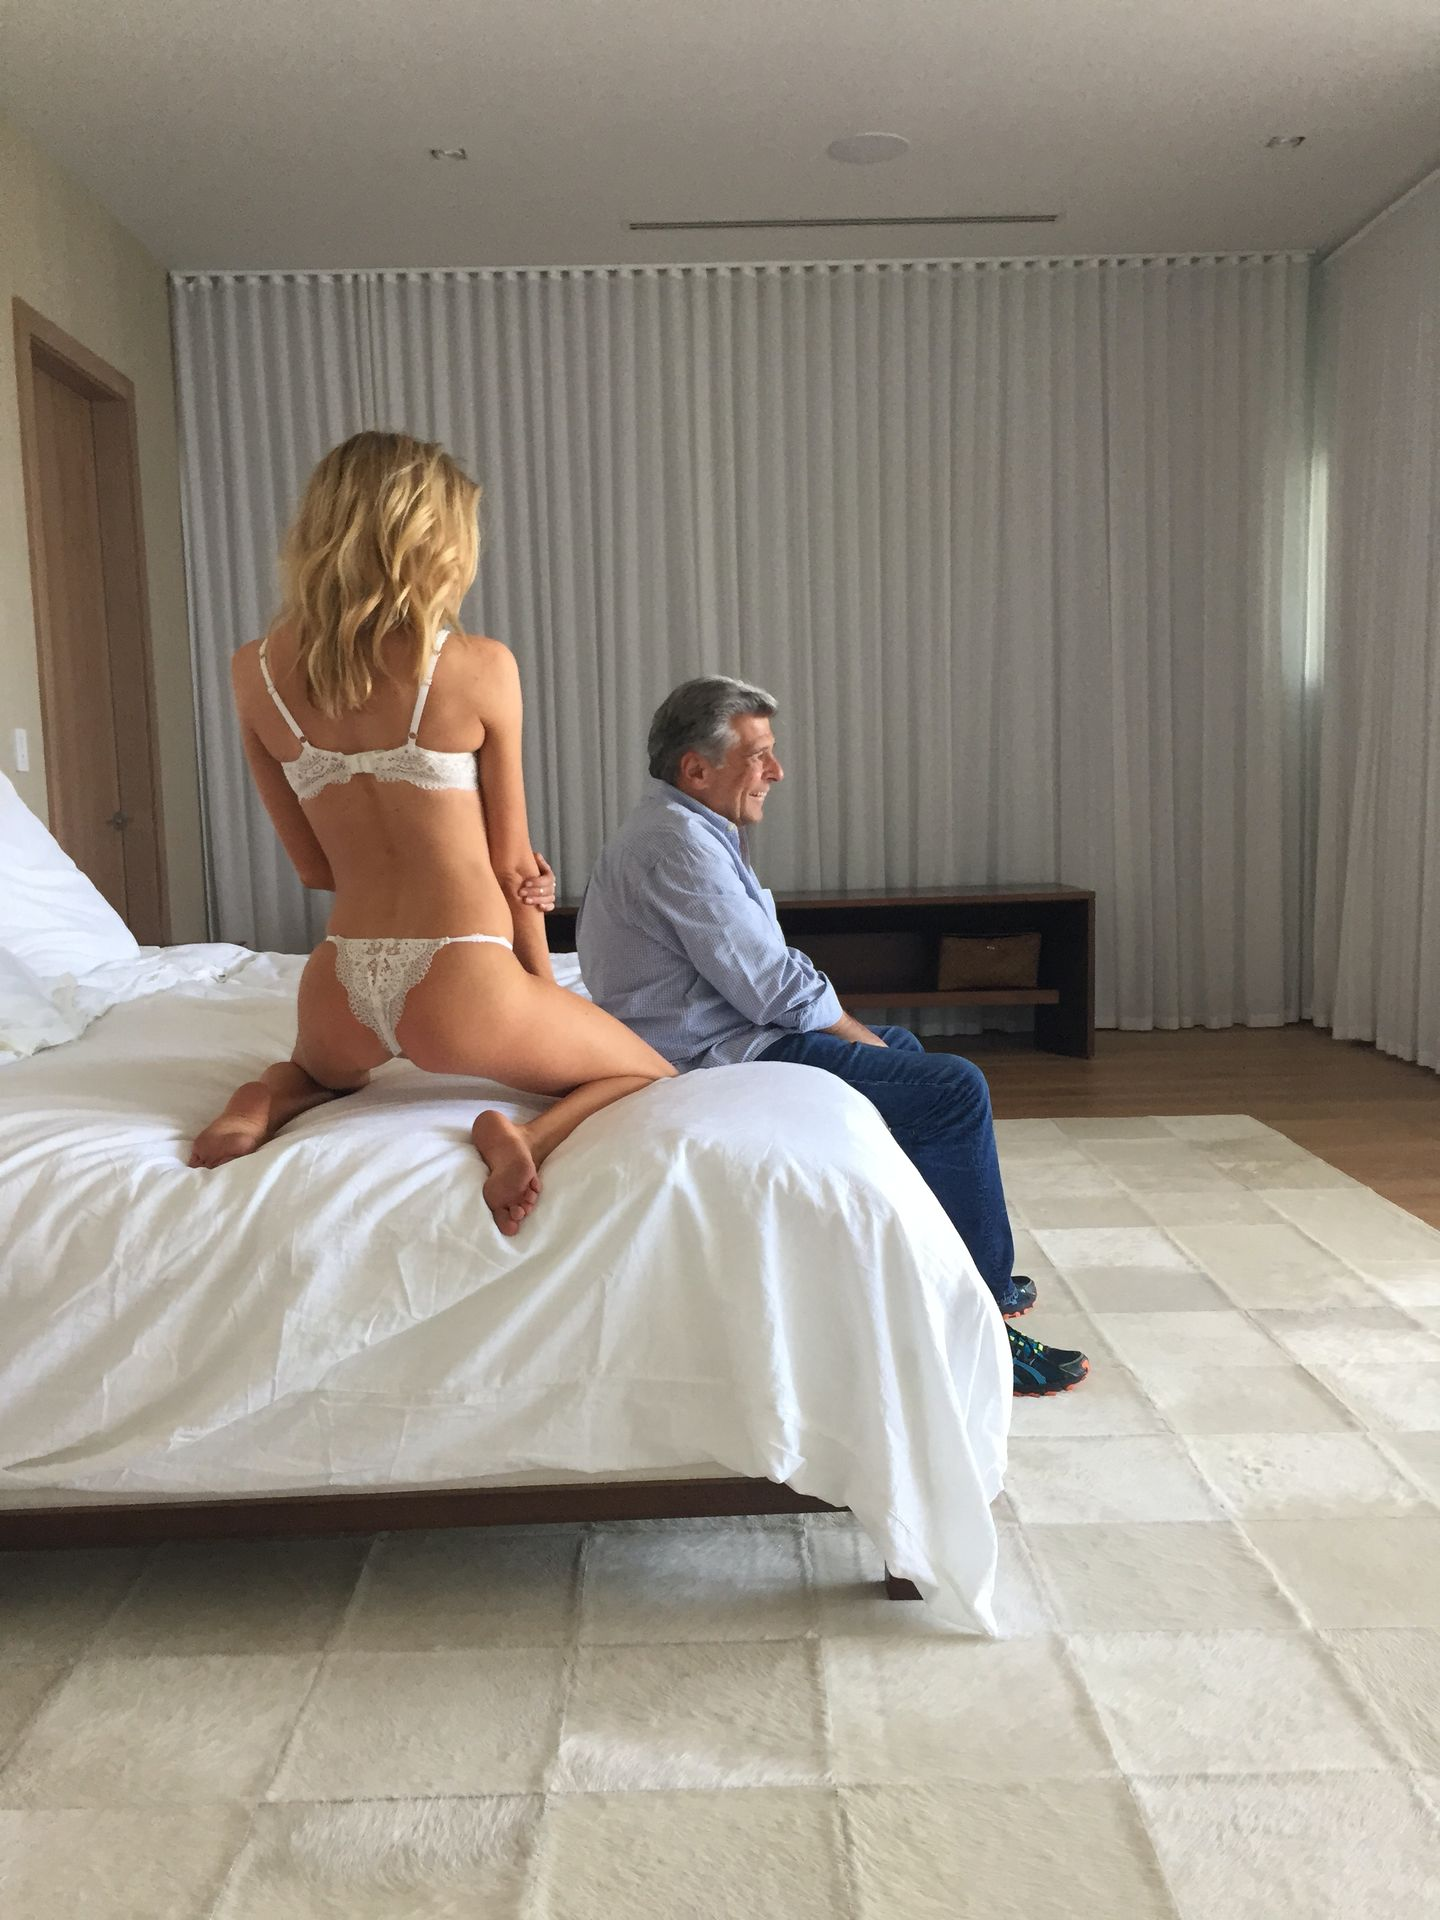 Stella Maxwell Nude Leaked The Fappening 0044